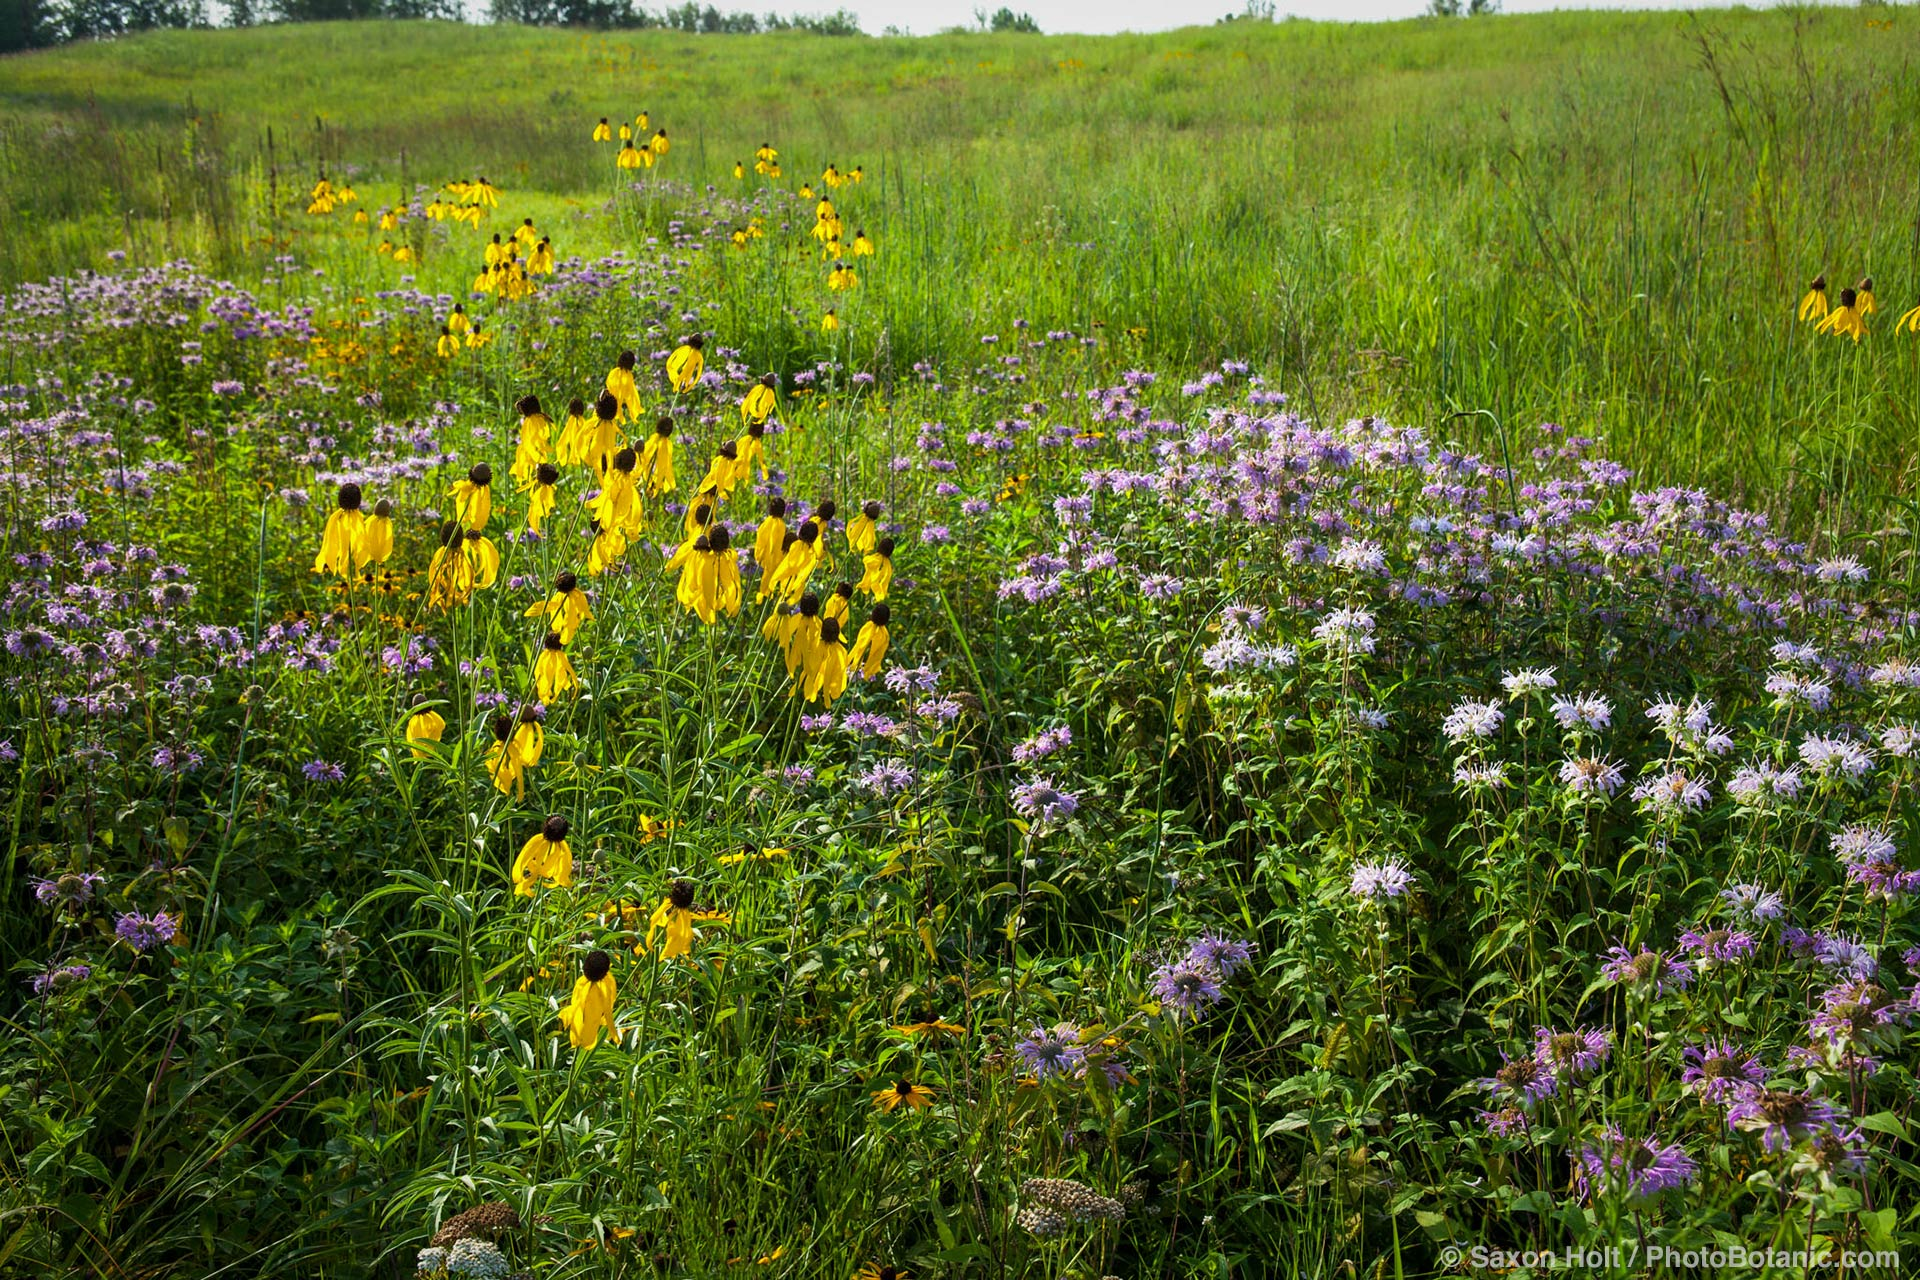 Summer, prairie wildflowers in meadow at Crow-Hassan Park, Minnesota; Gray-headed Coneflower (Ratibida pinnata), Bergamot or Bee Balm (Monarda fistulosa)